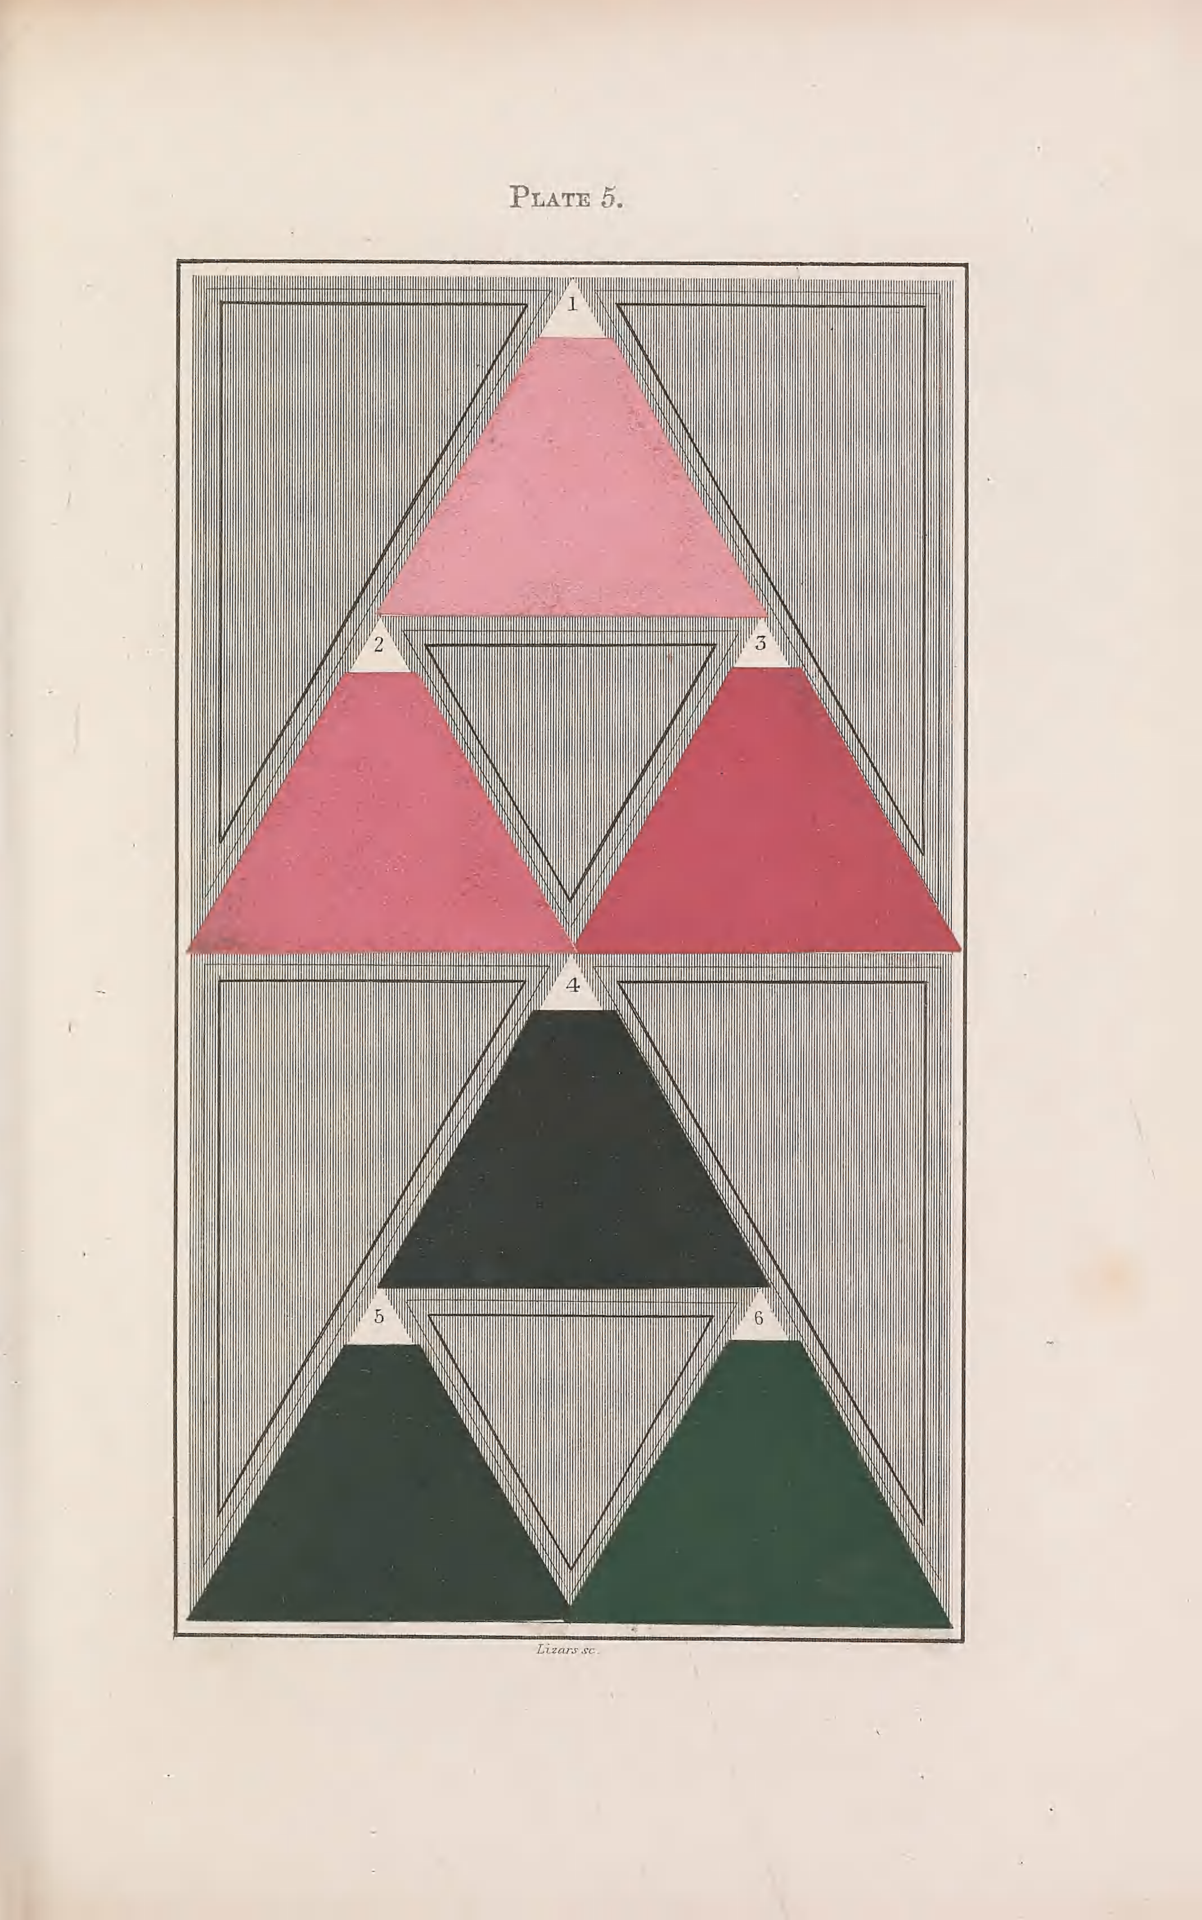 """Plate 5.""""Exhibits three tints produced by red, and three shades produced by green.""""A nomencl... - #1846 #19th #century #chart #color #d.r. #design #geometric #green #hay #hue #nemfrog #red #triangles"""